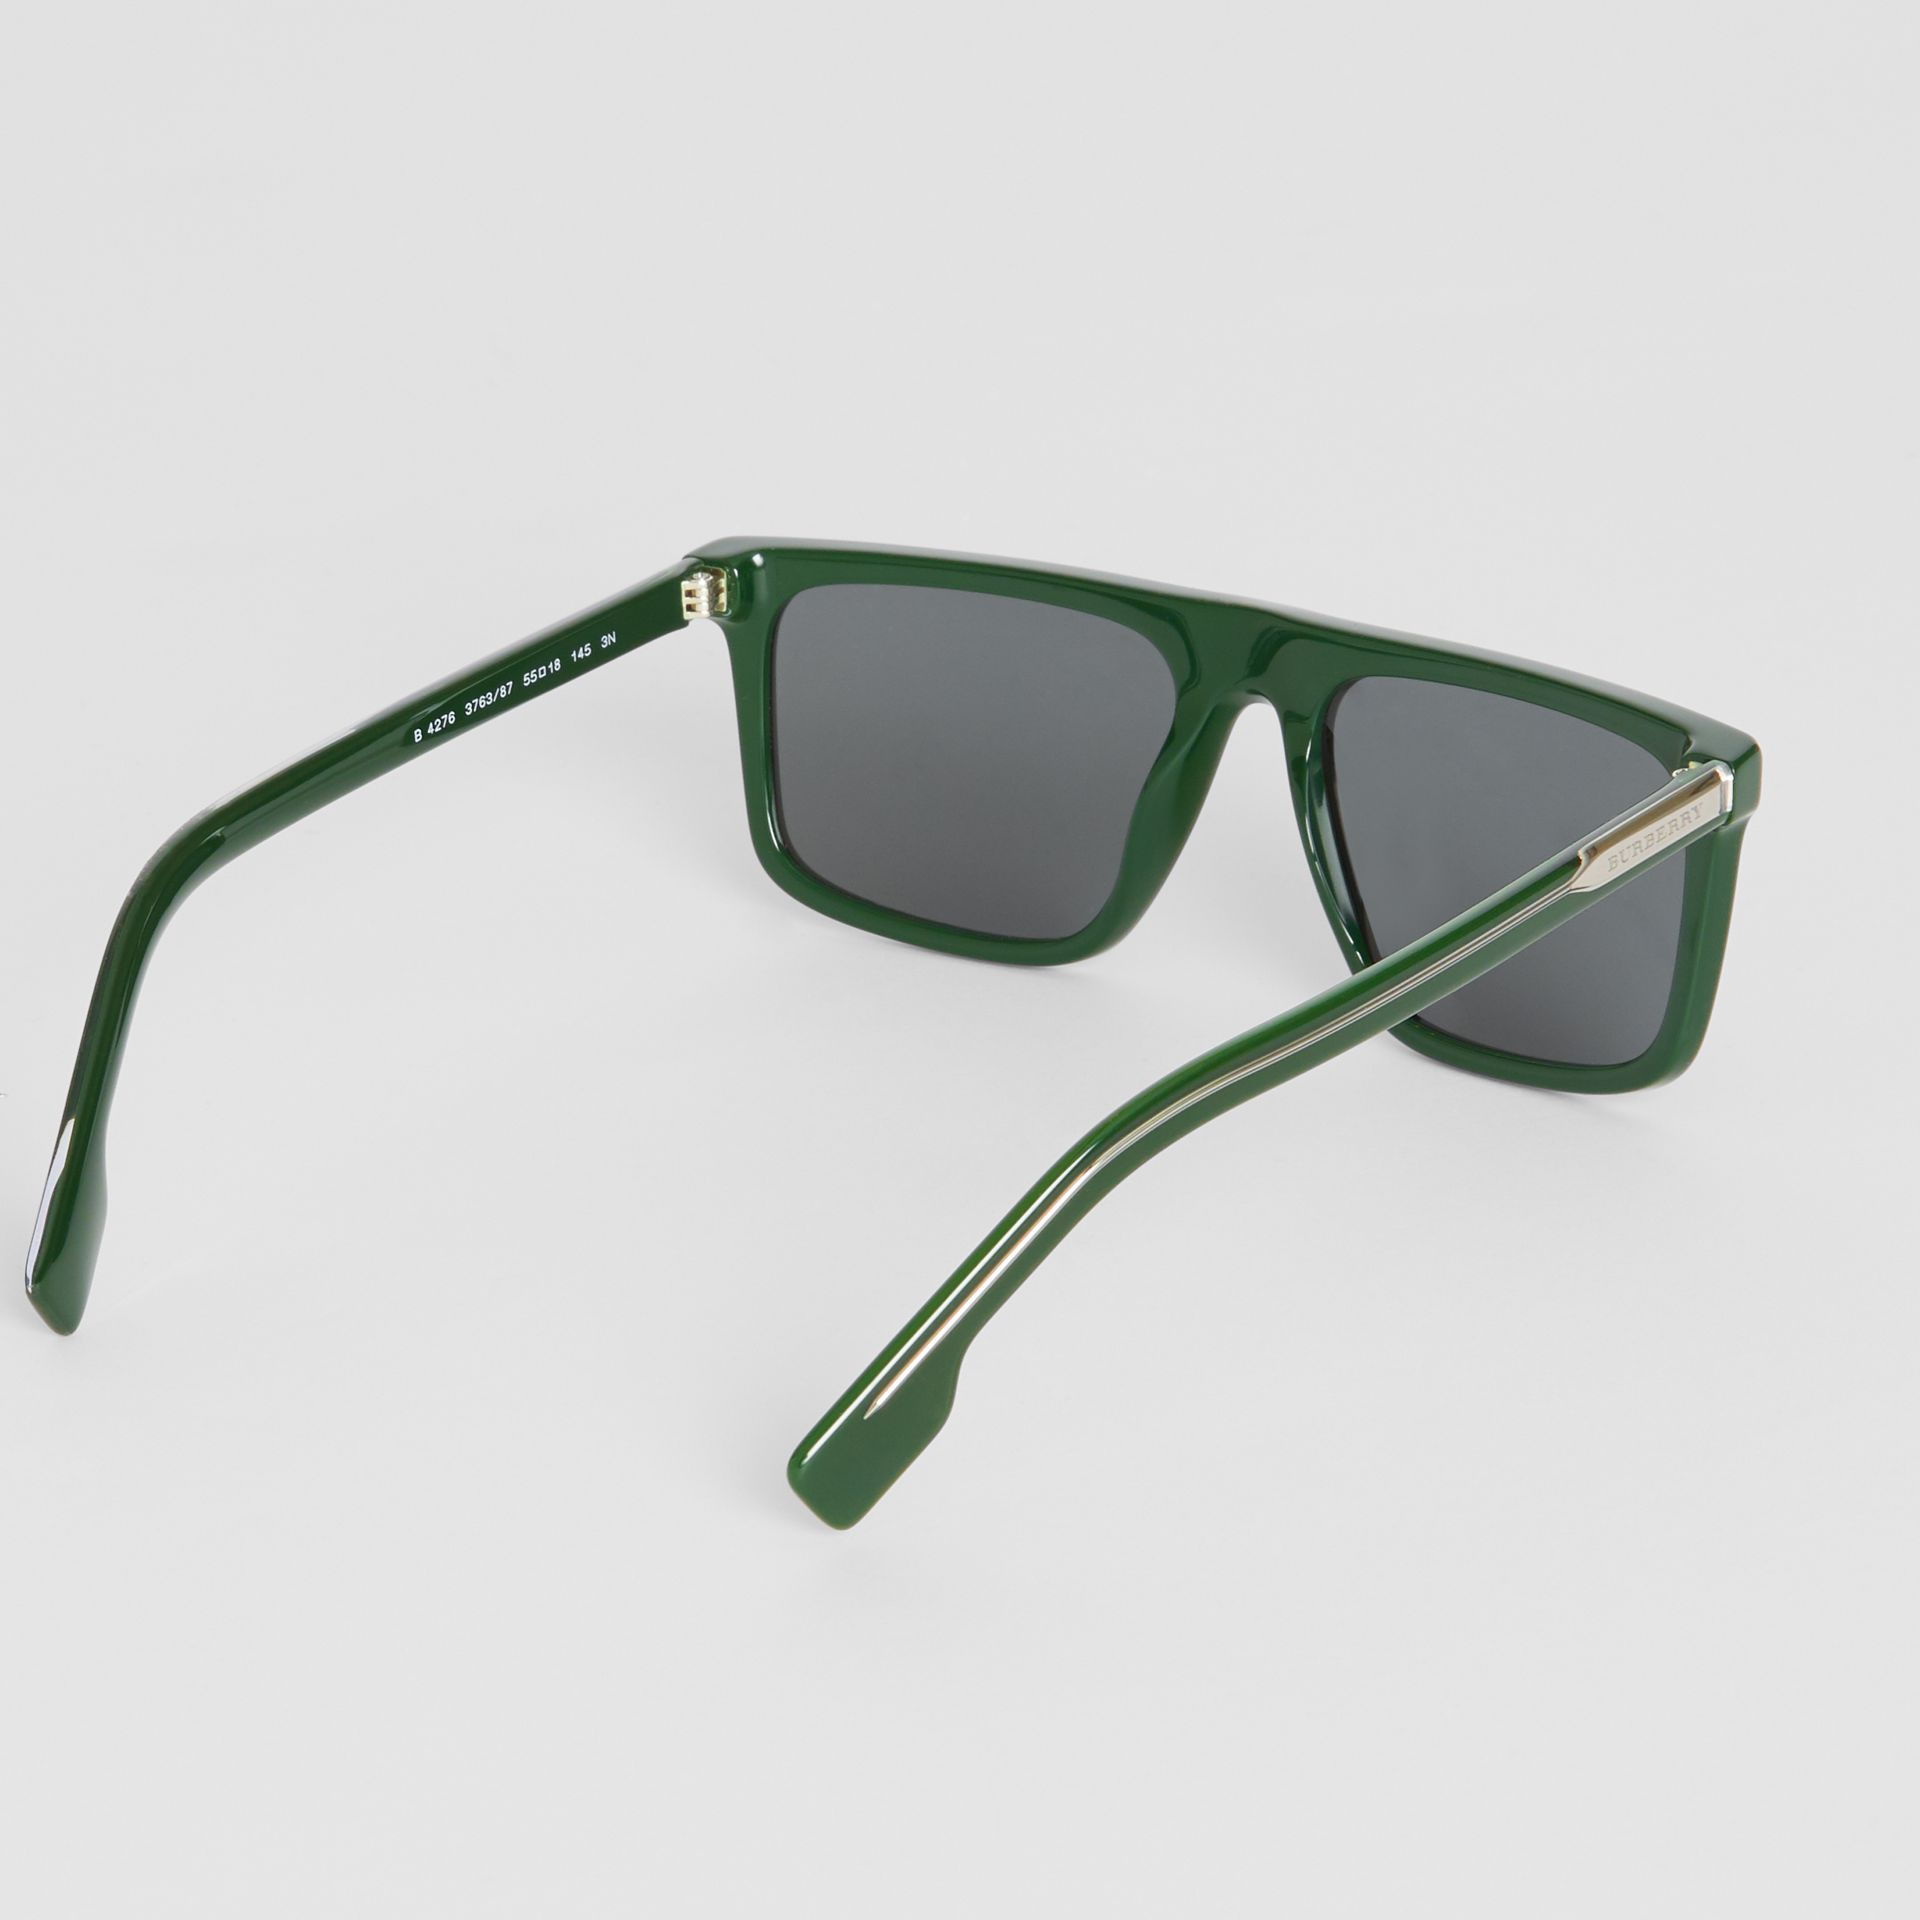 Straight-brow Sunglasses in Green - Men | Burberry - gallery image 4